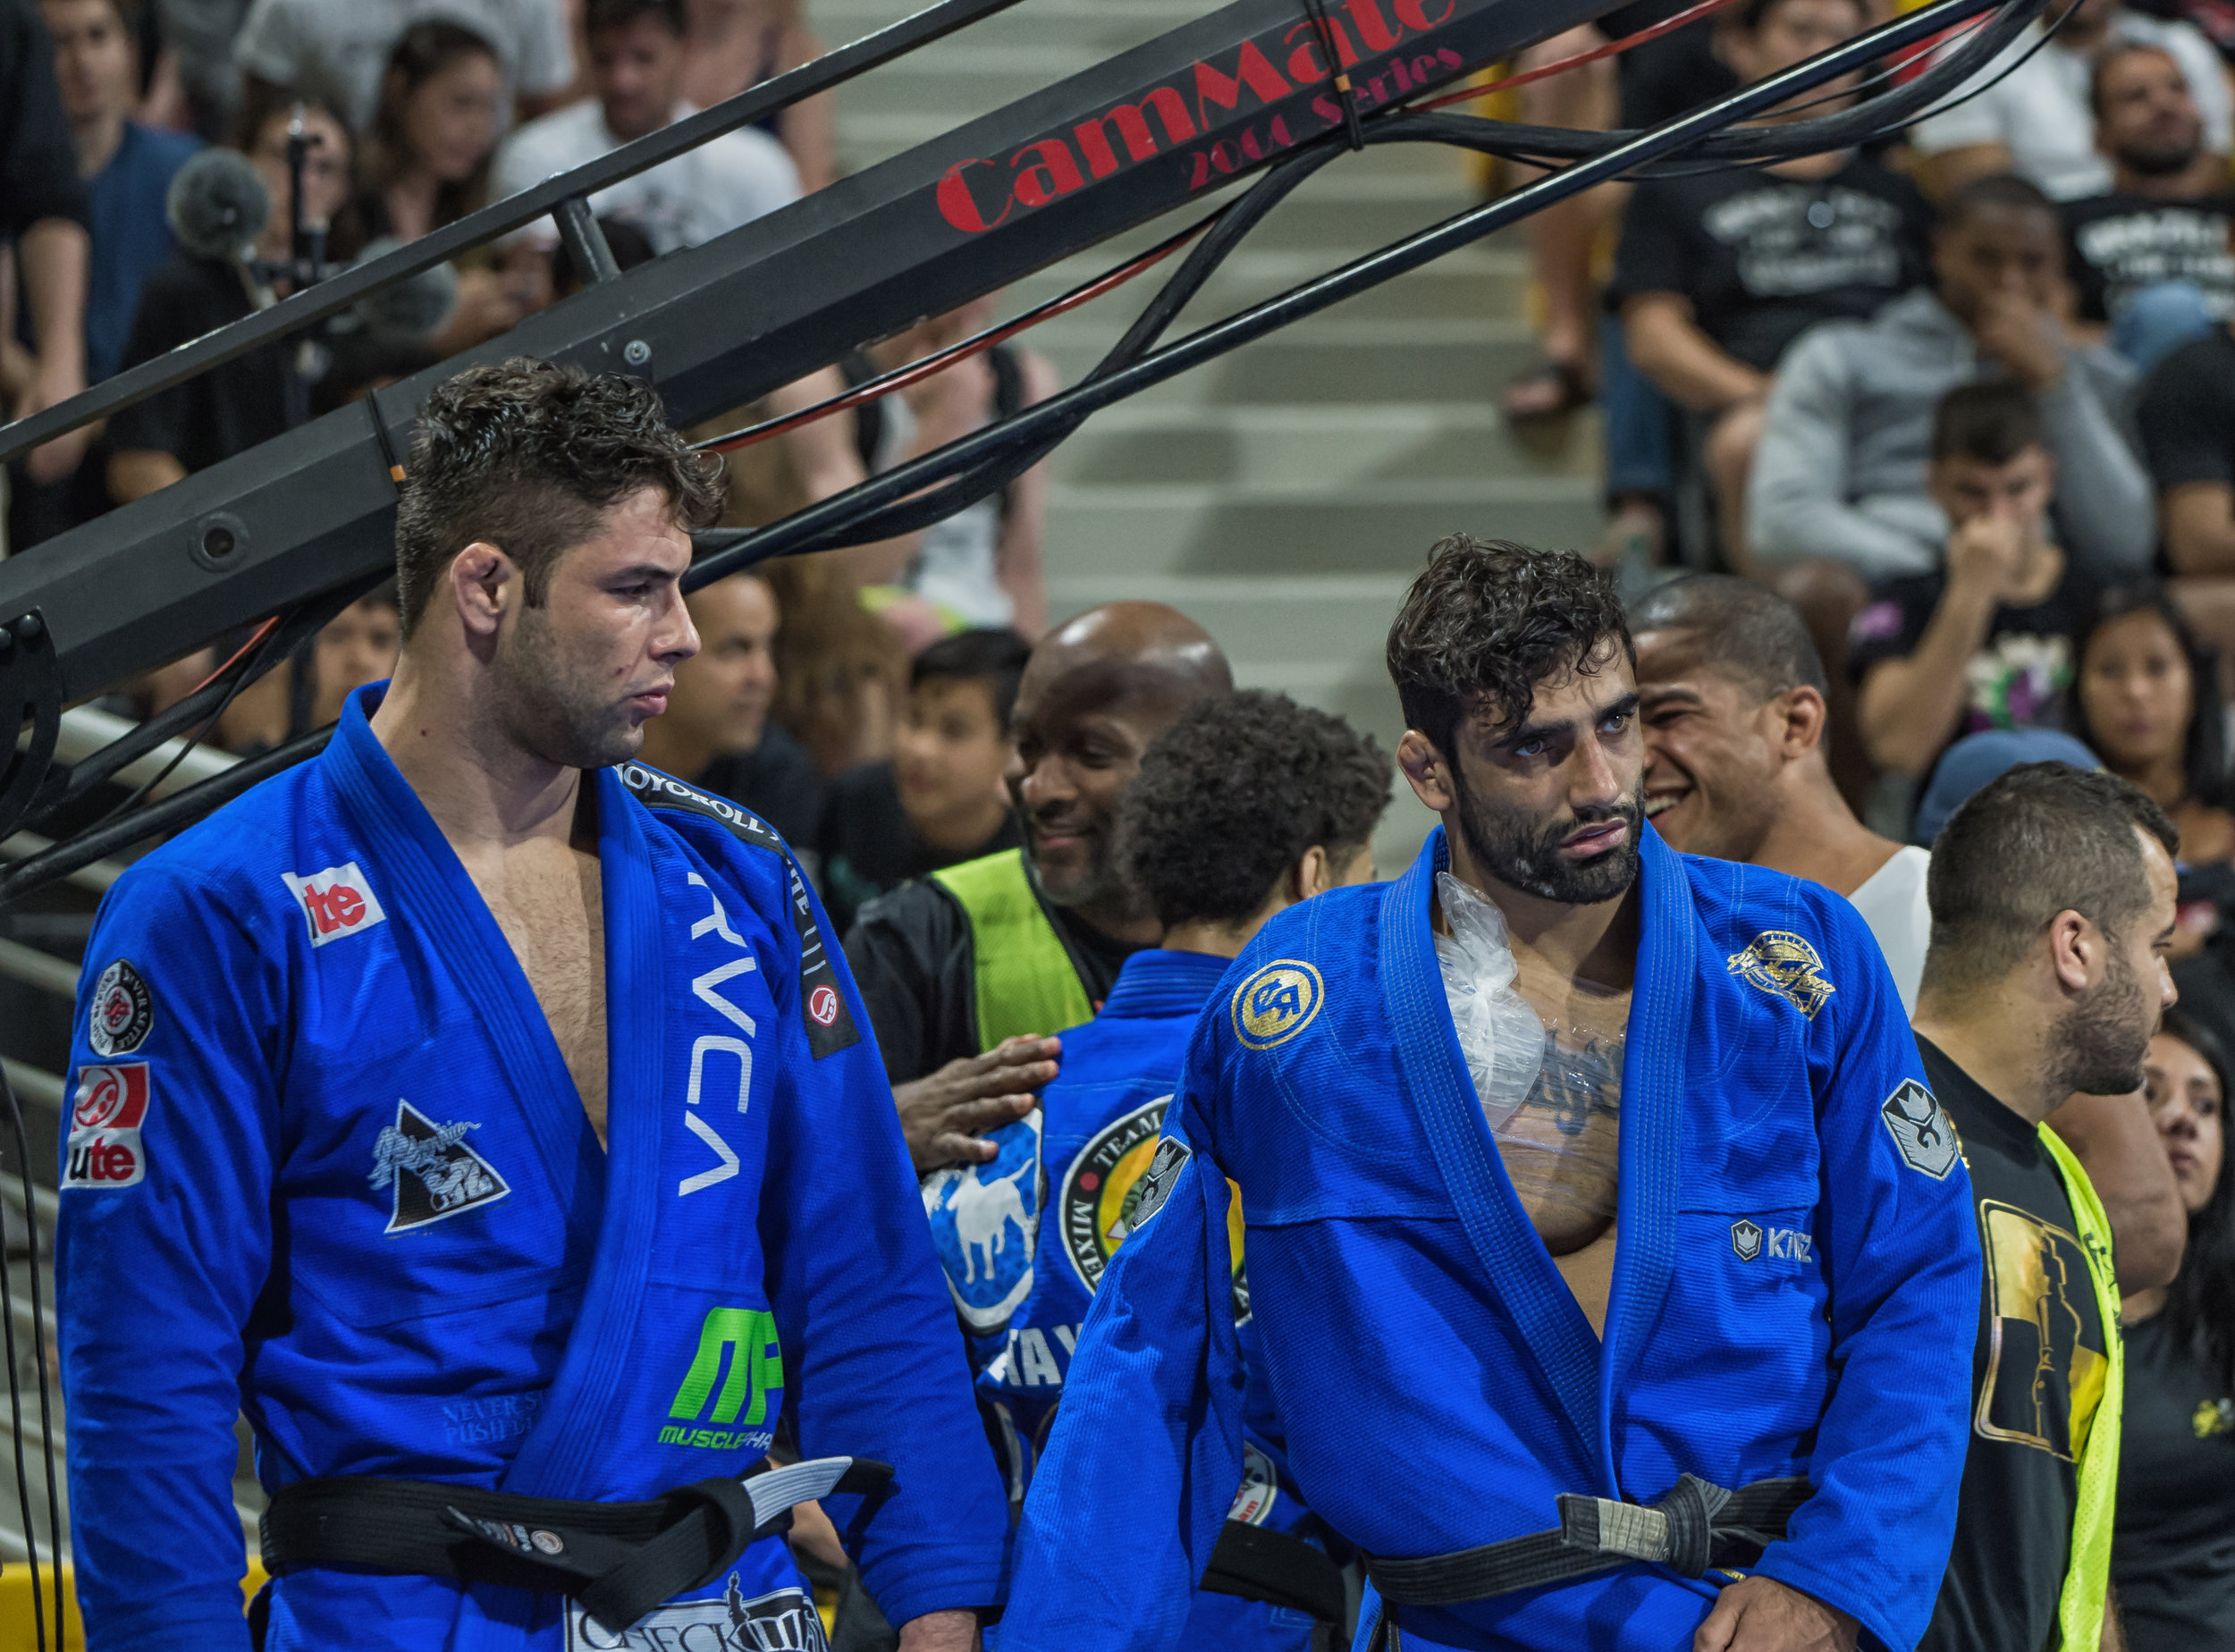 Buchecha and Leandro Lo await to be called to the mat for the Absolute Finals…